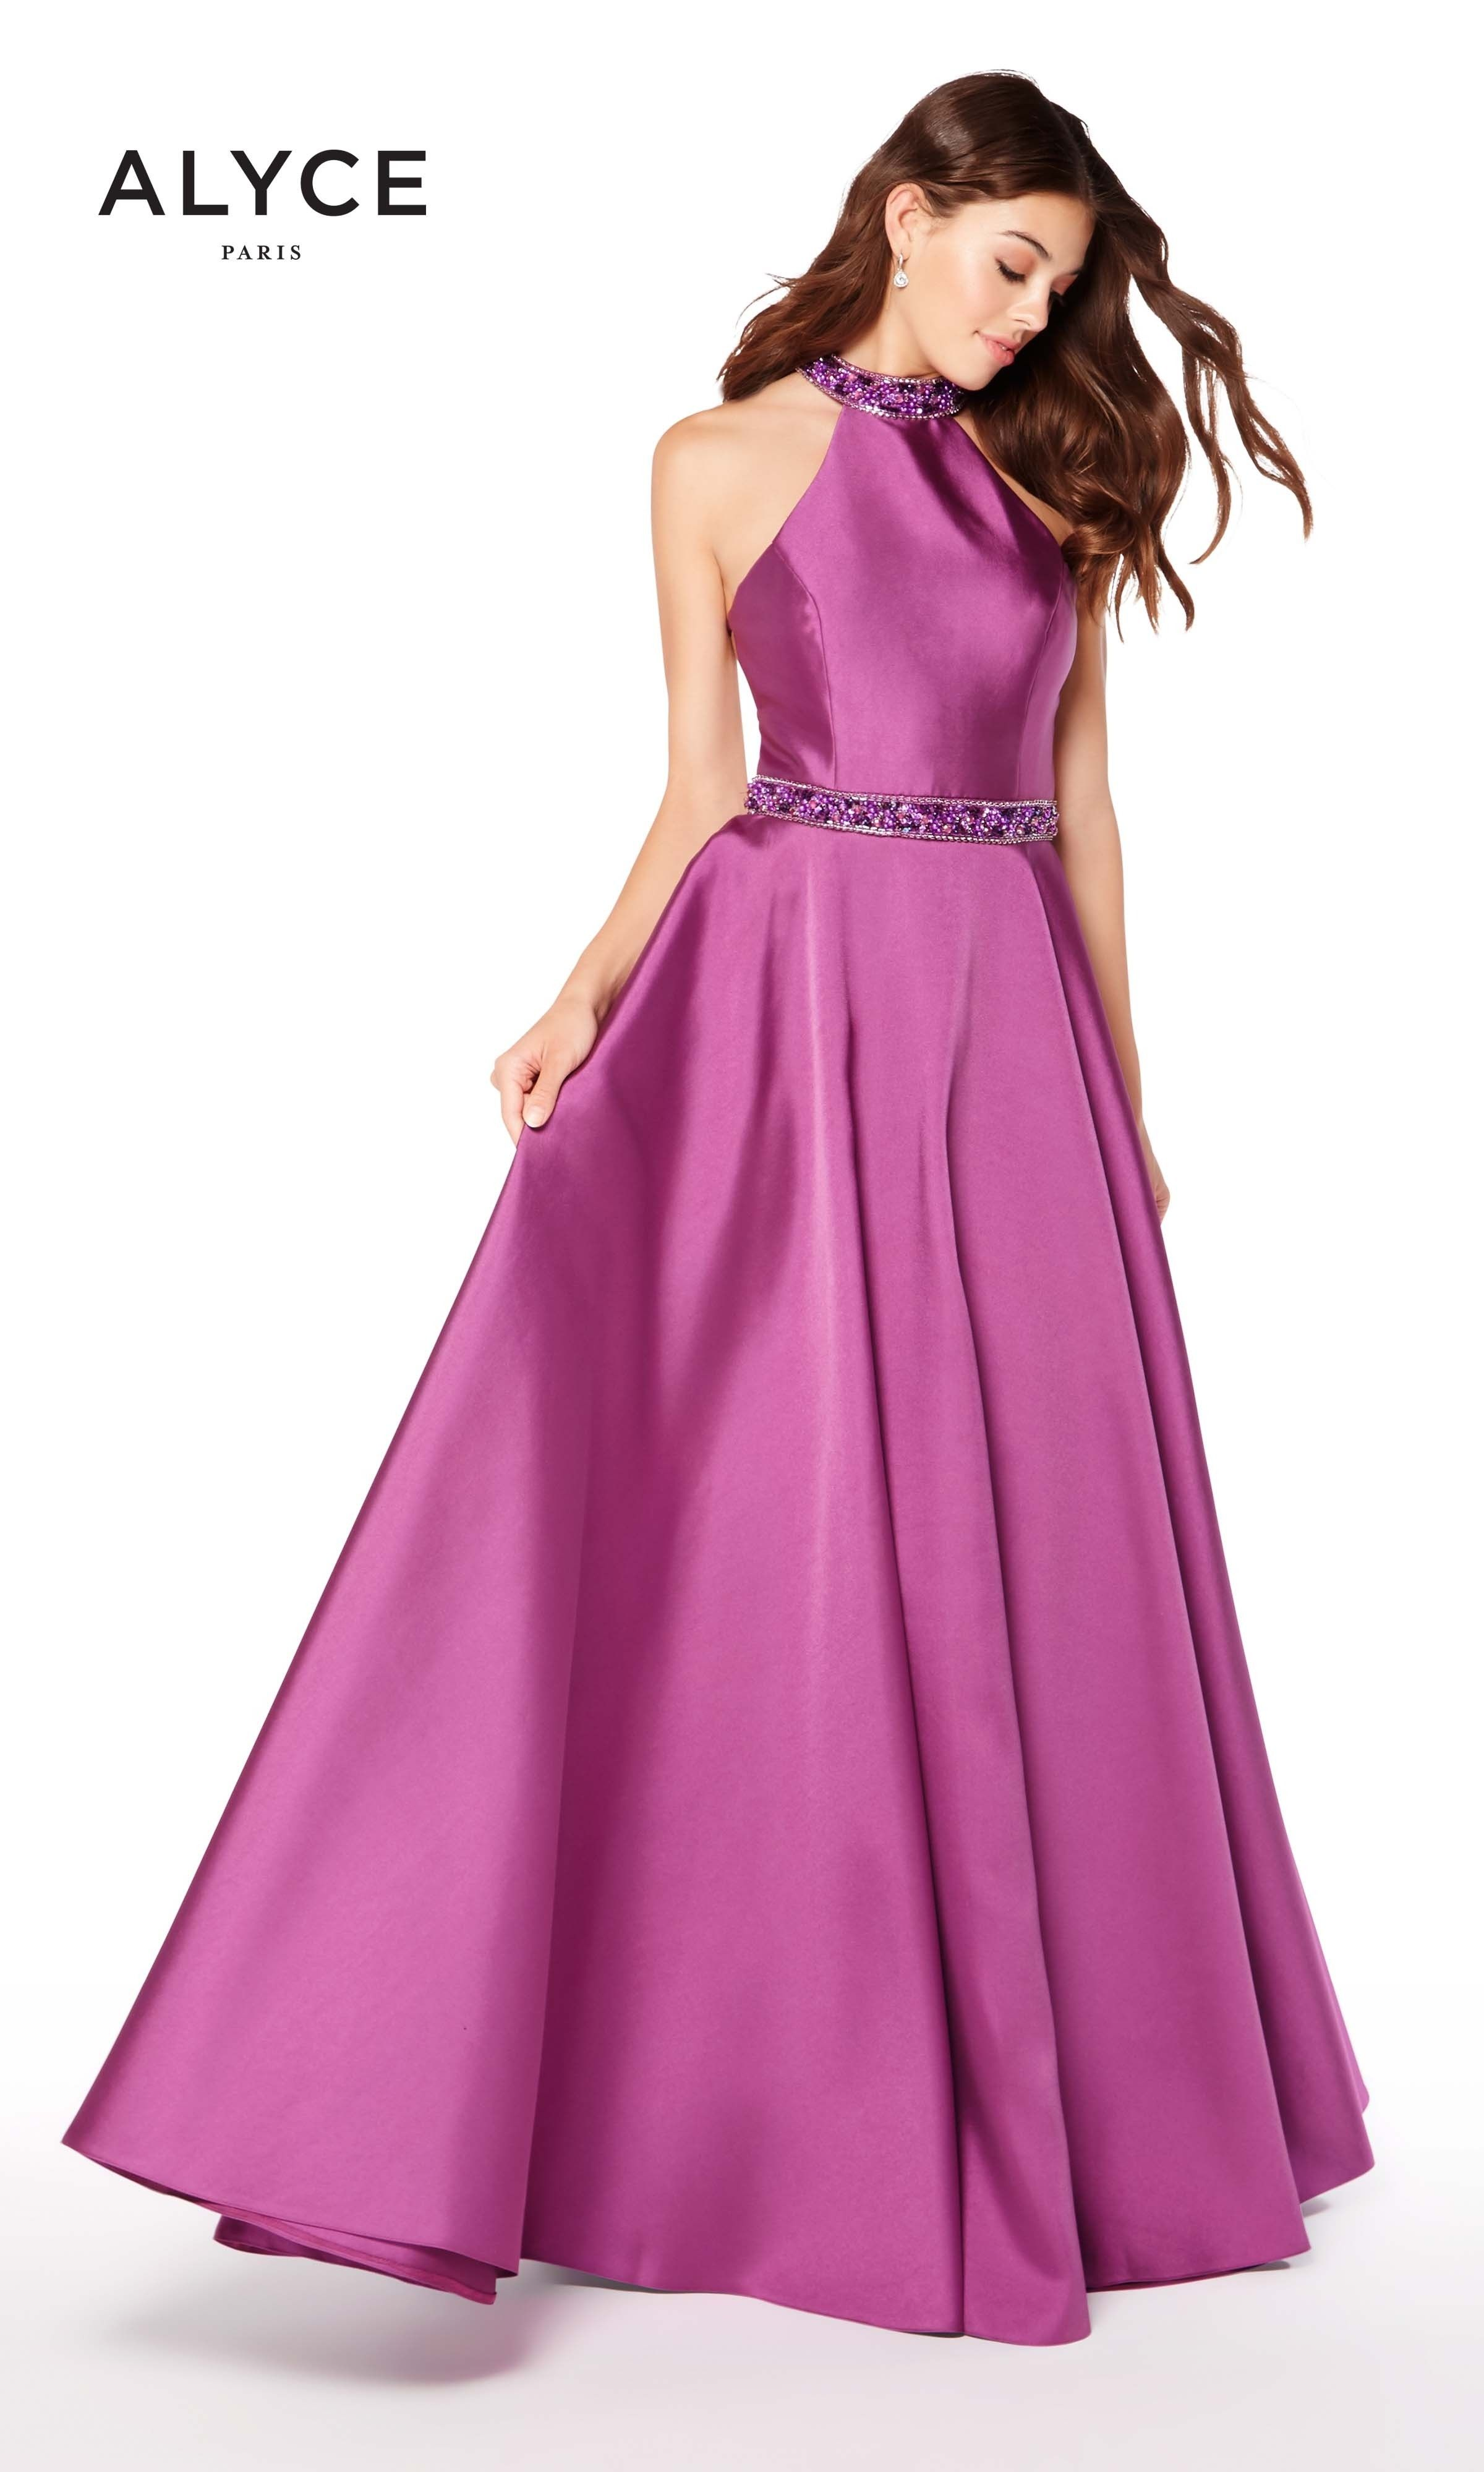 Alyce 60104 Relaxed Ballgown with Open Back and Gem Belt